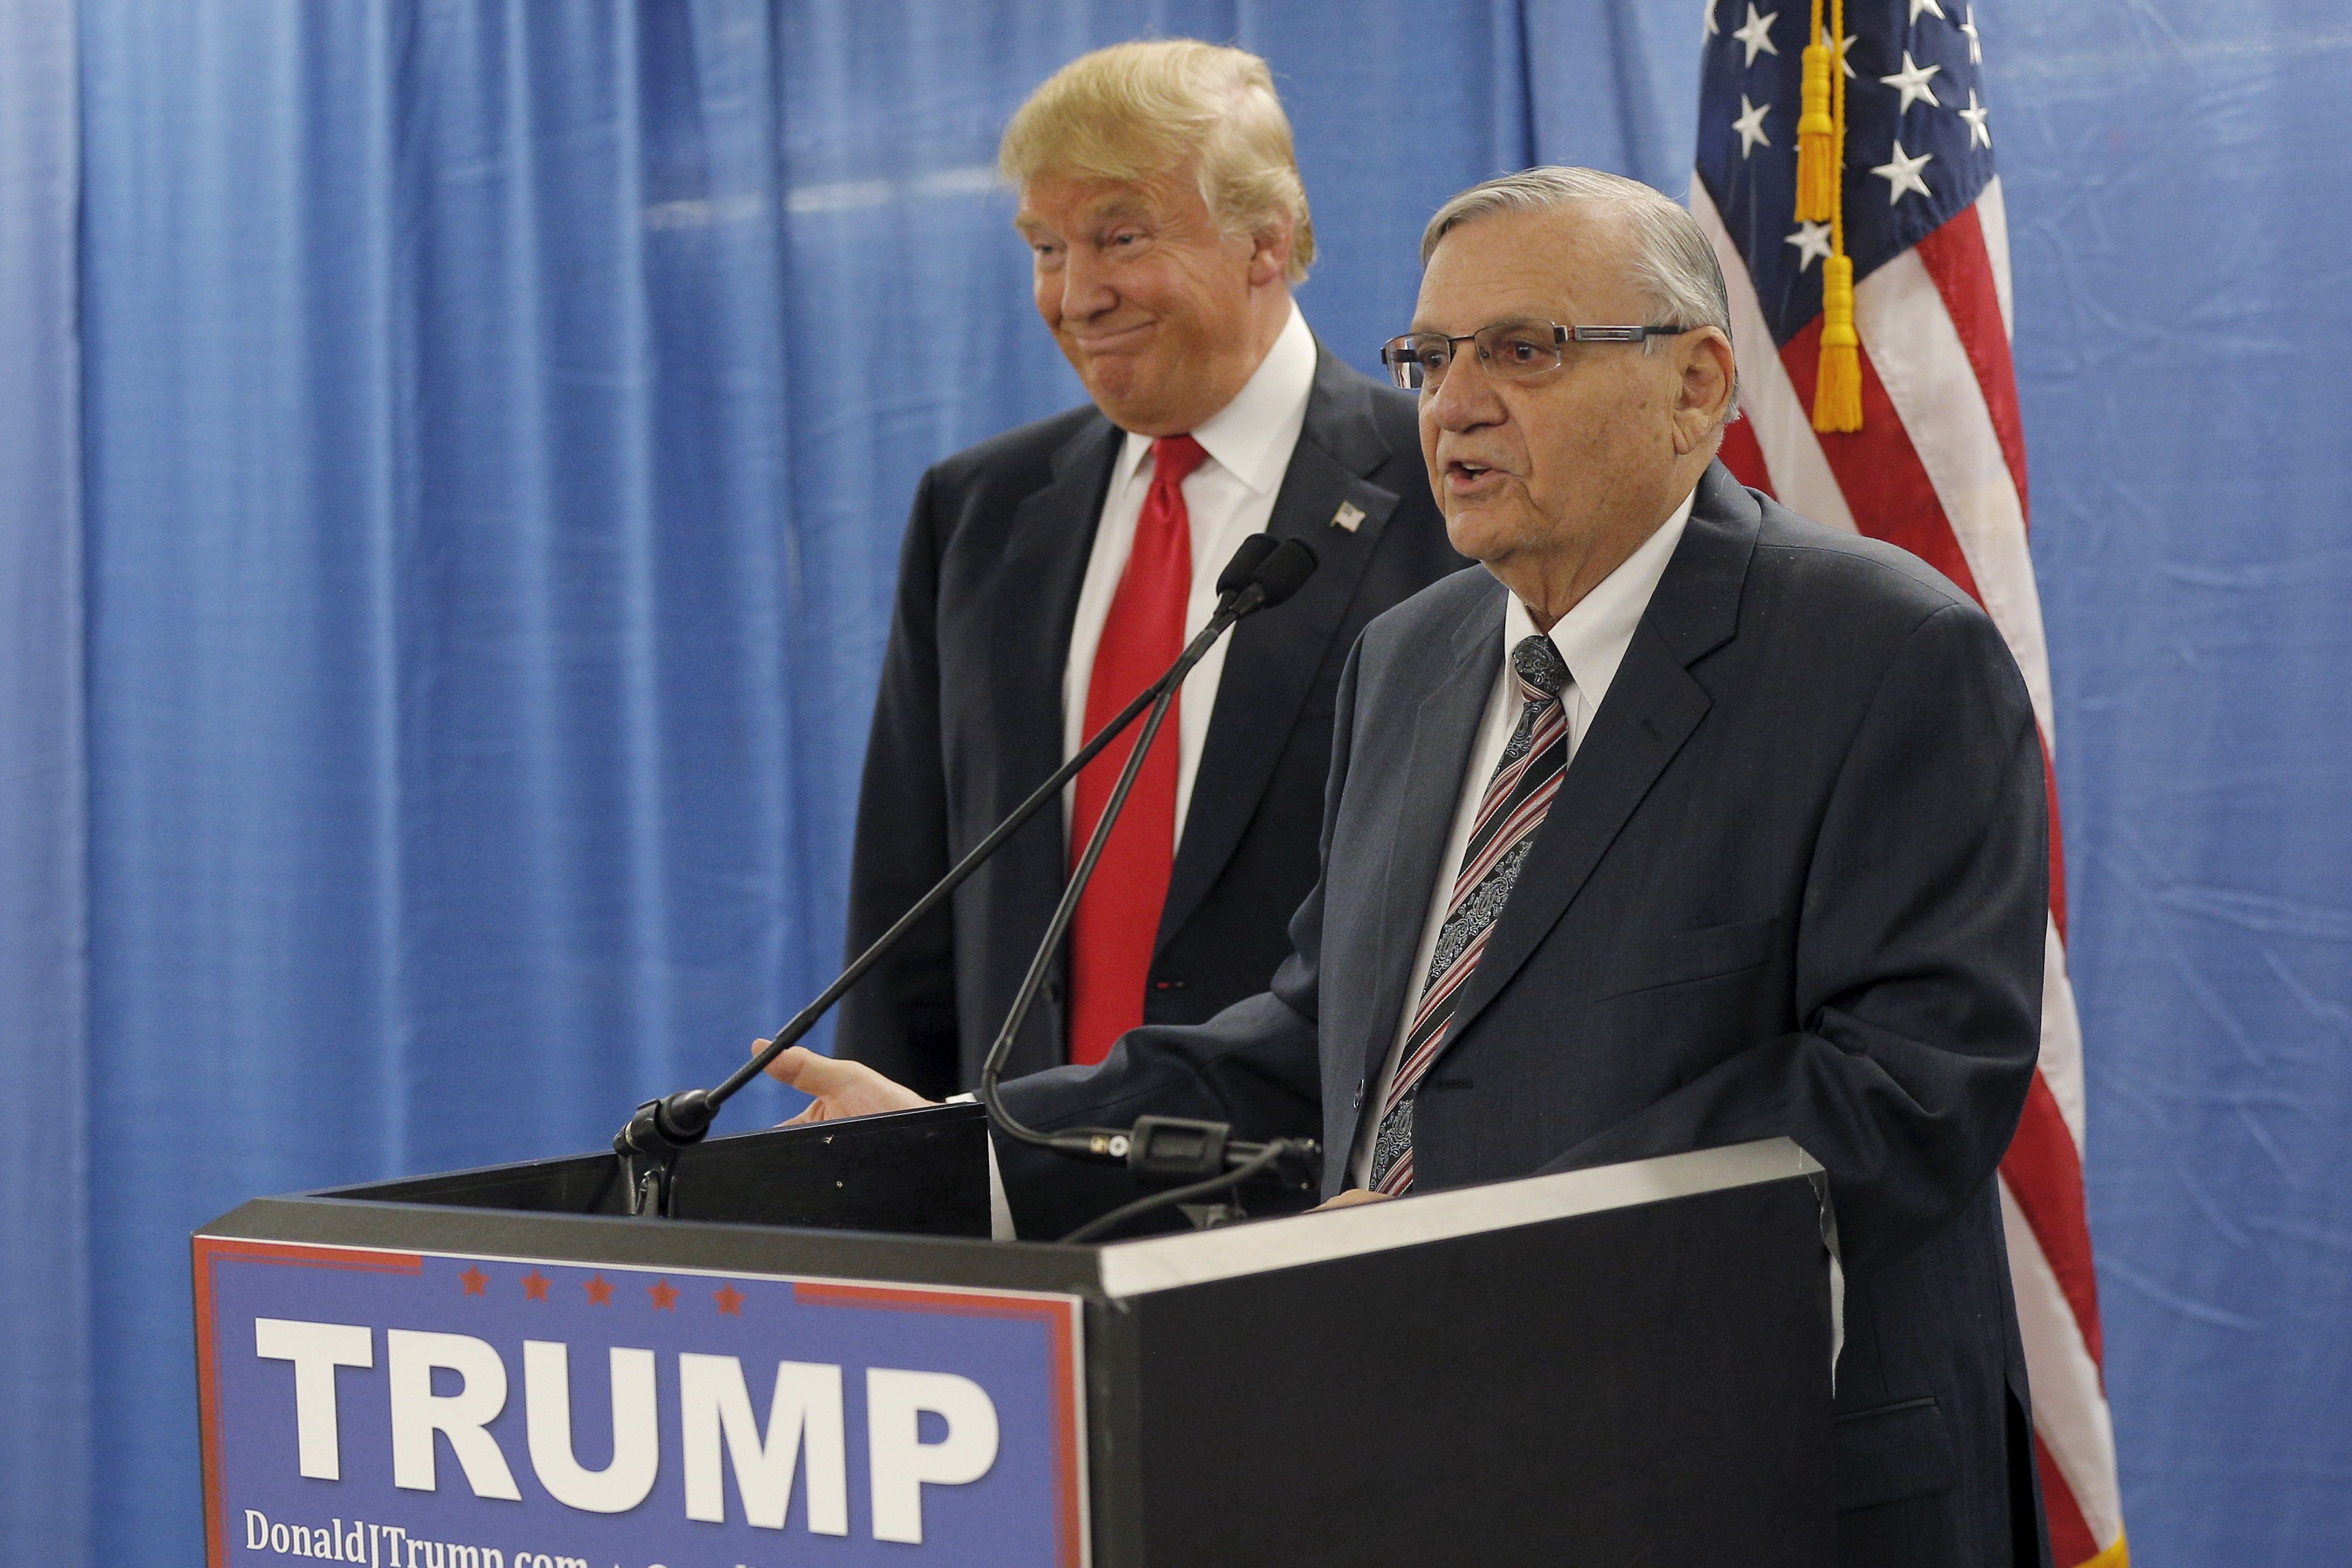 Then-presidential candidateDonald Trump listens to the endorsement of Maricopa County Sheriff Joe Arpaio before a campa